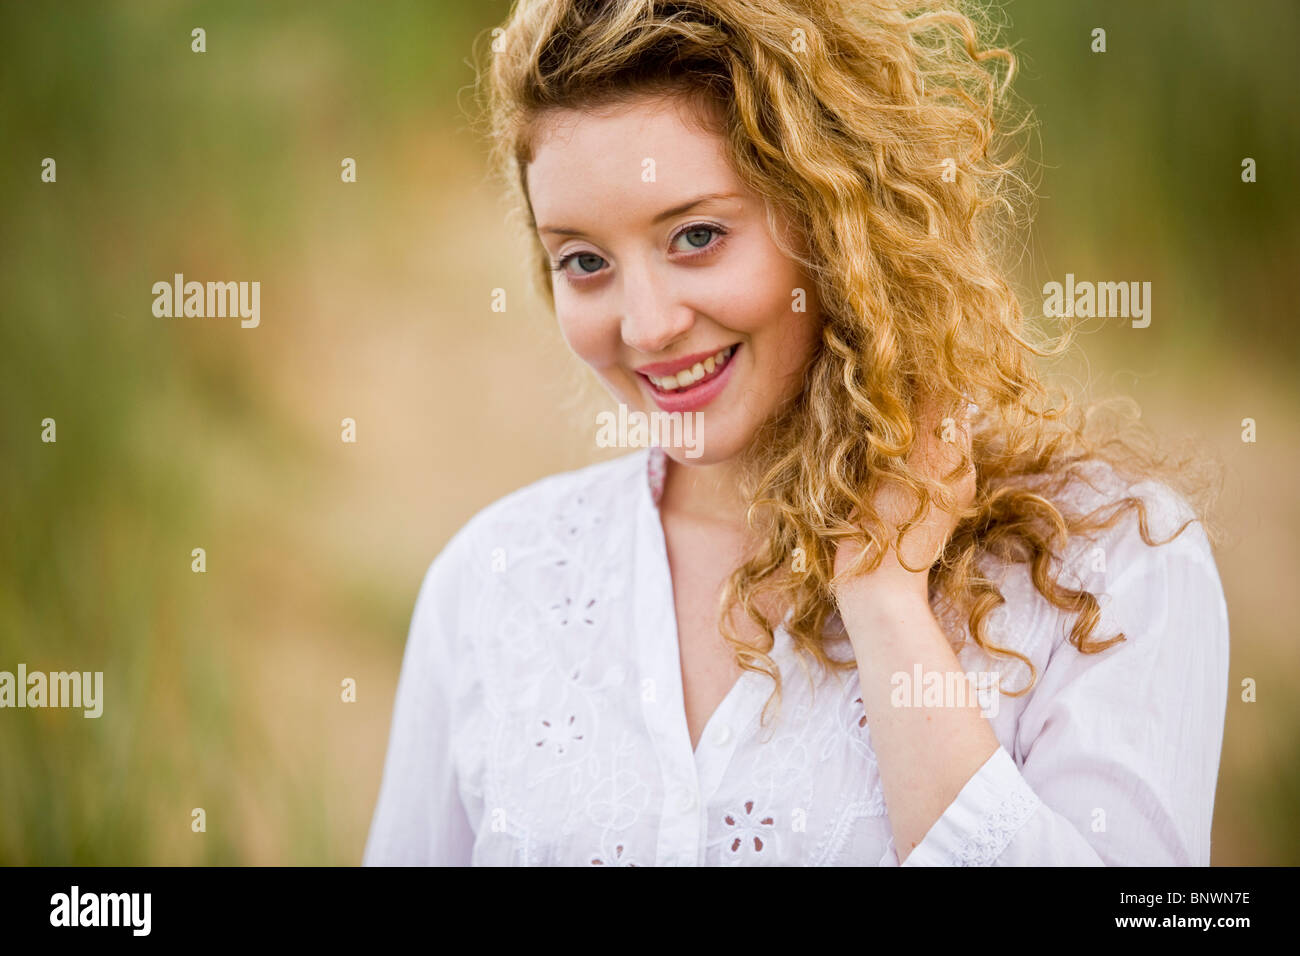 Portrait of attractive woman outdoors Photo Stock